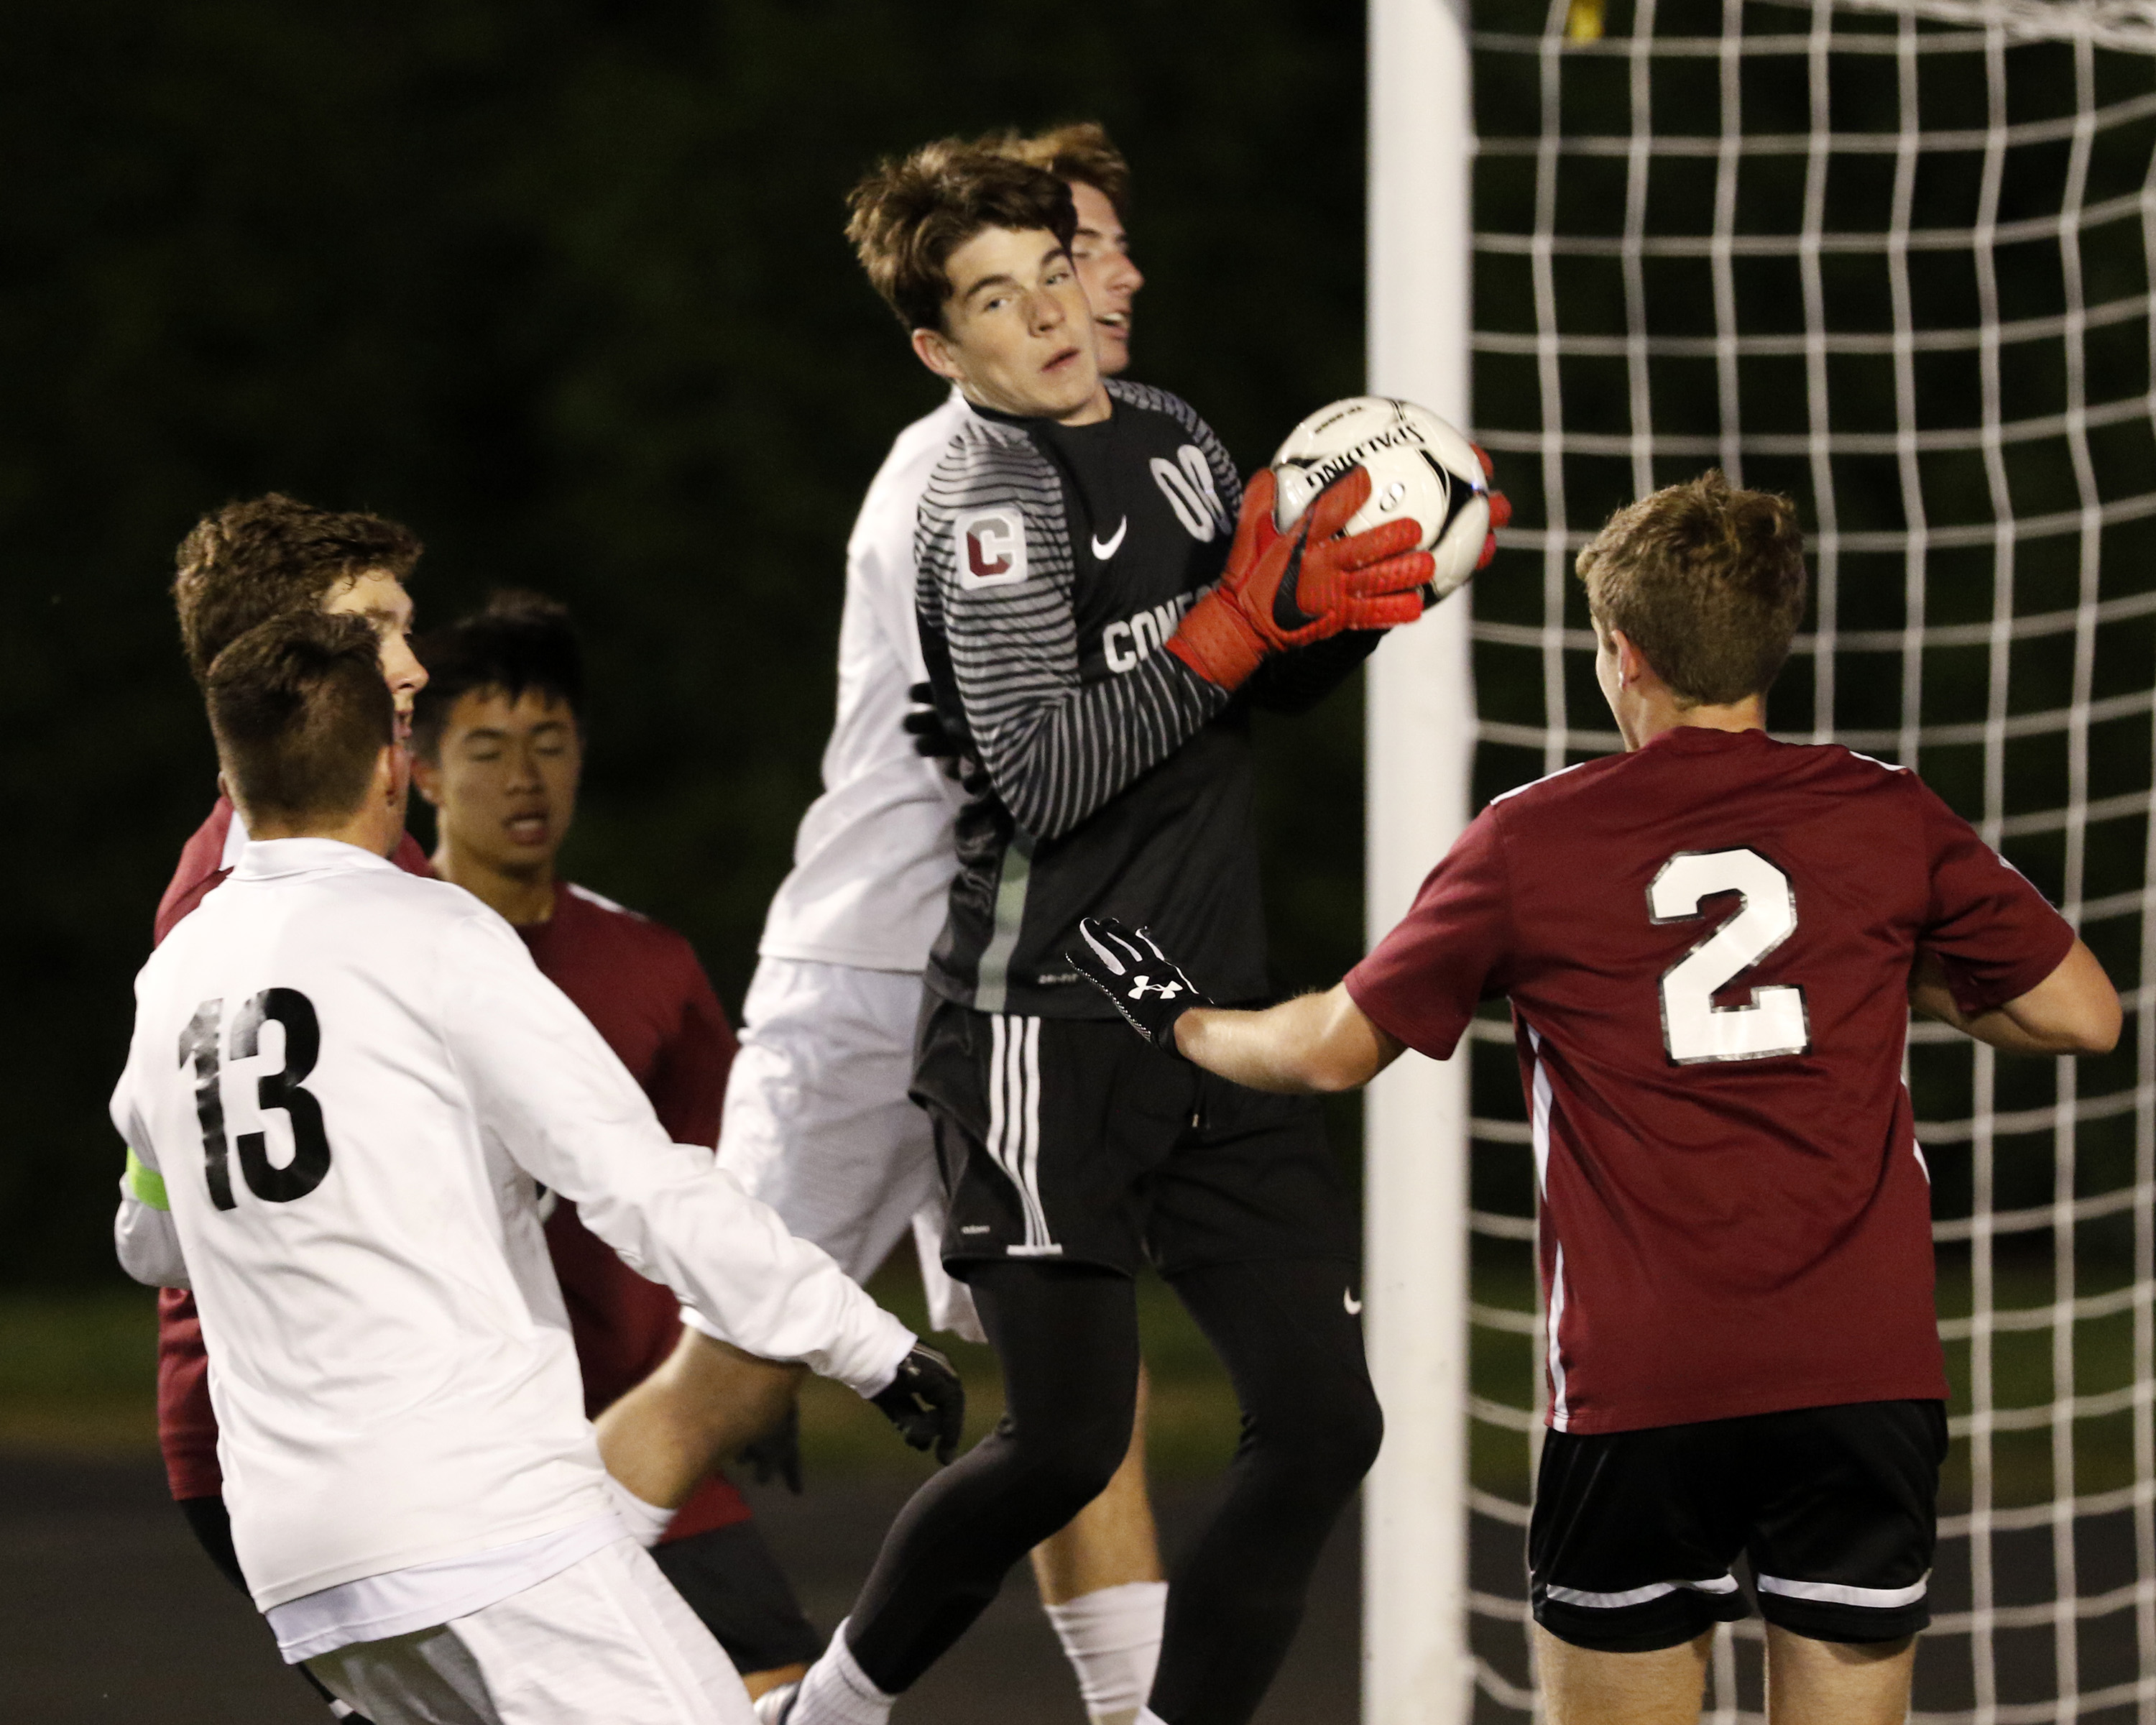 Main Line boys' soccer squads looking strong again this fall